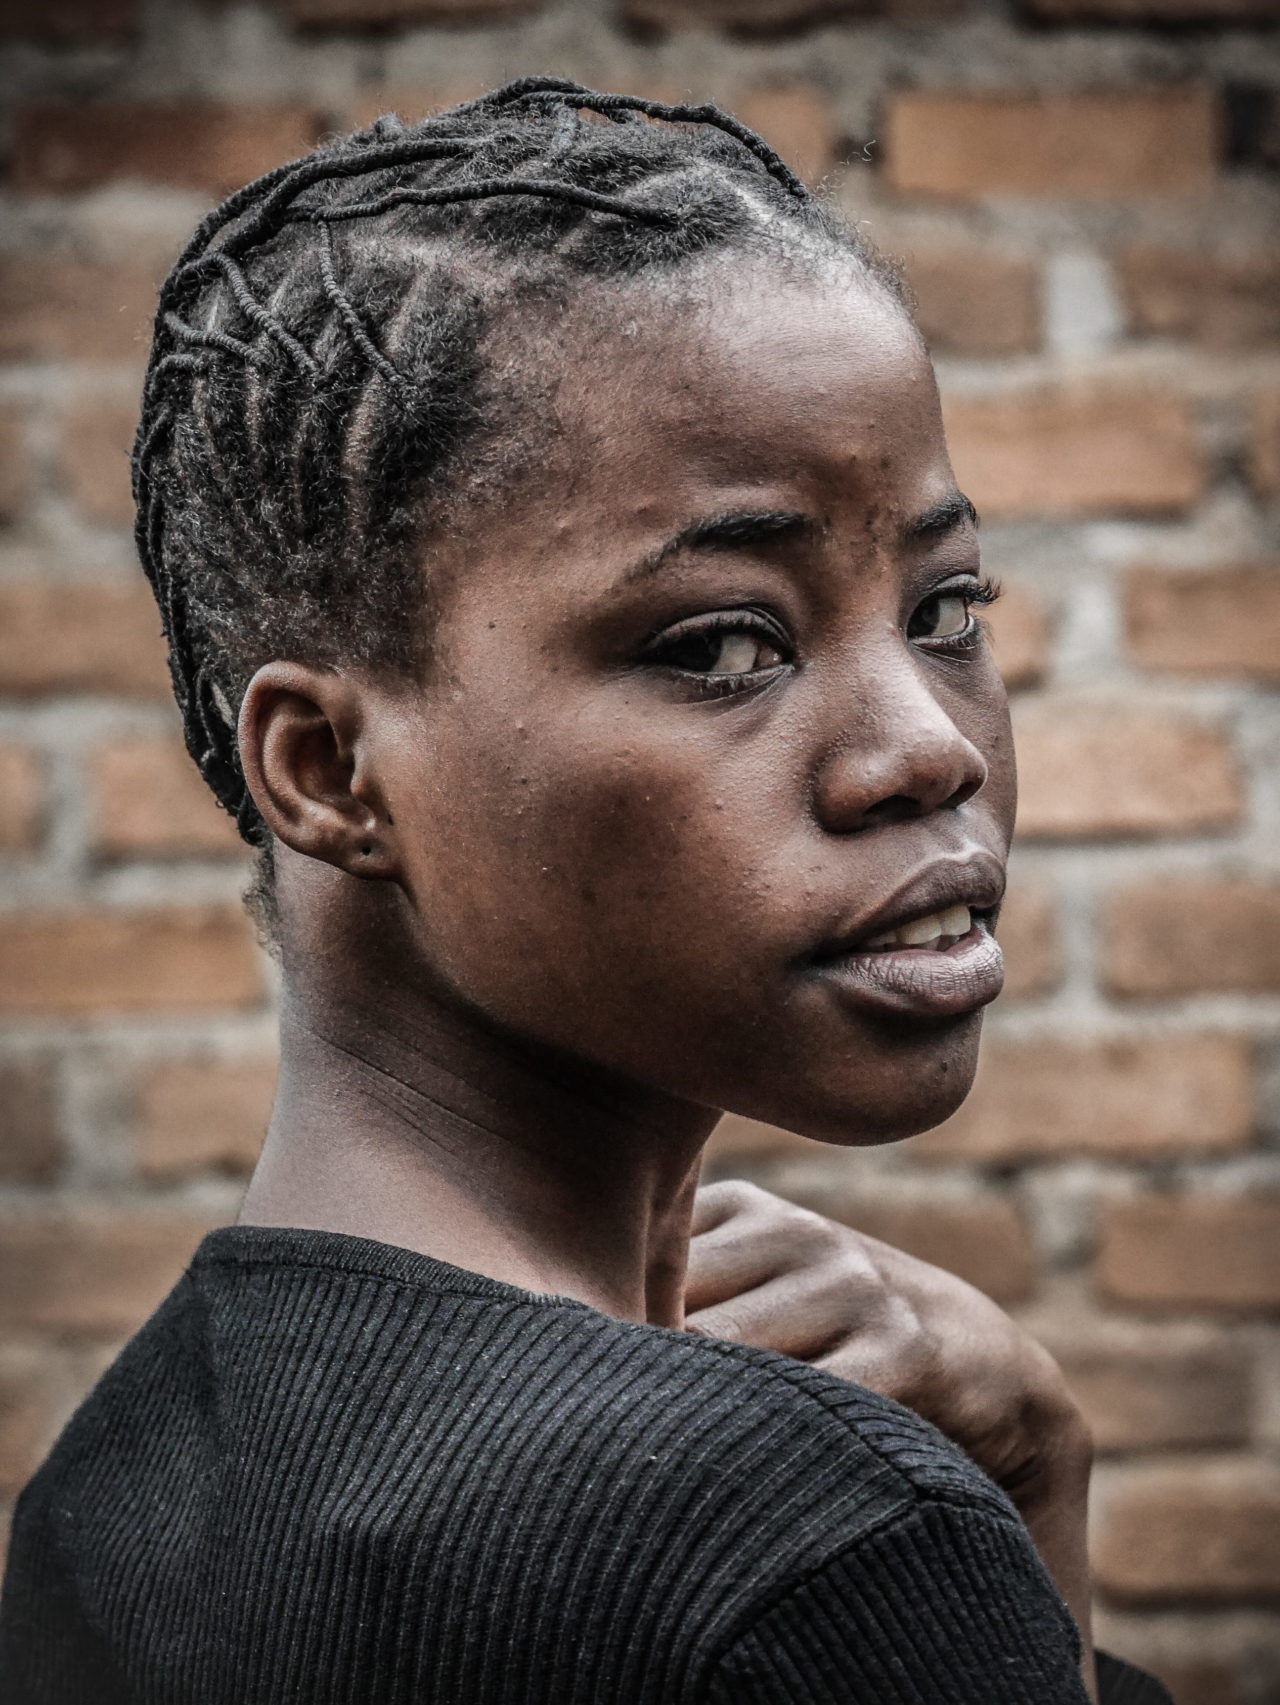 Bukavu, DRC, May 2020. A girl with a traditional hairstyle in the eastern Congolese city of Bukavu during Coronavirus confinement. © Raissa Rwizibuka Karama for Fondation Carmignac